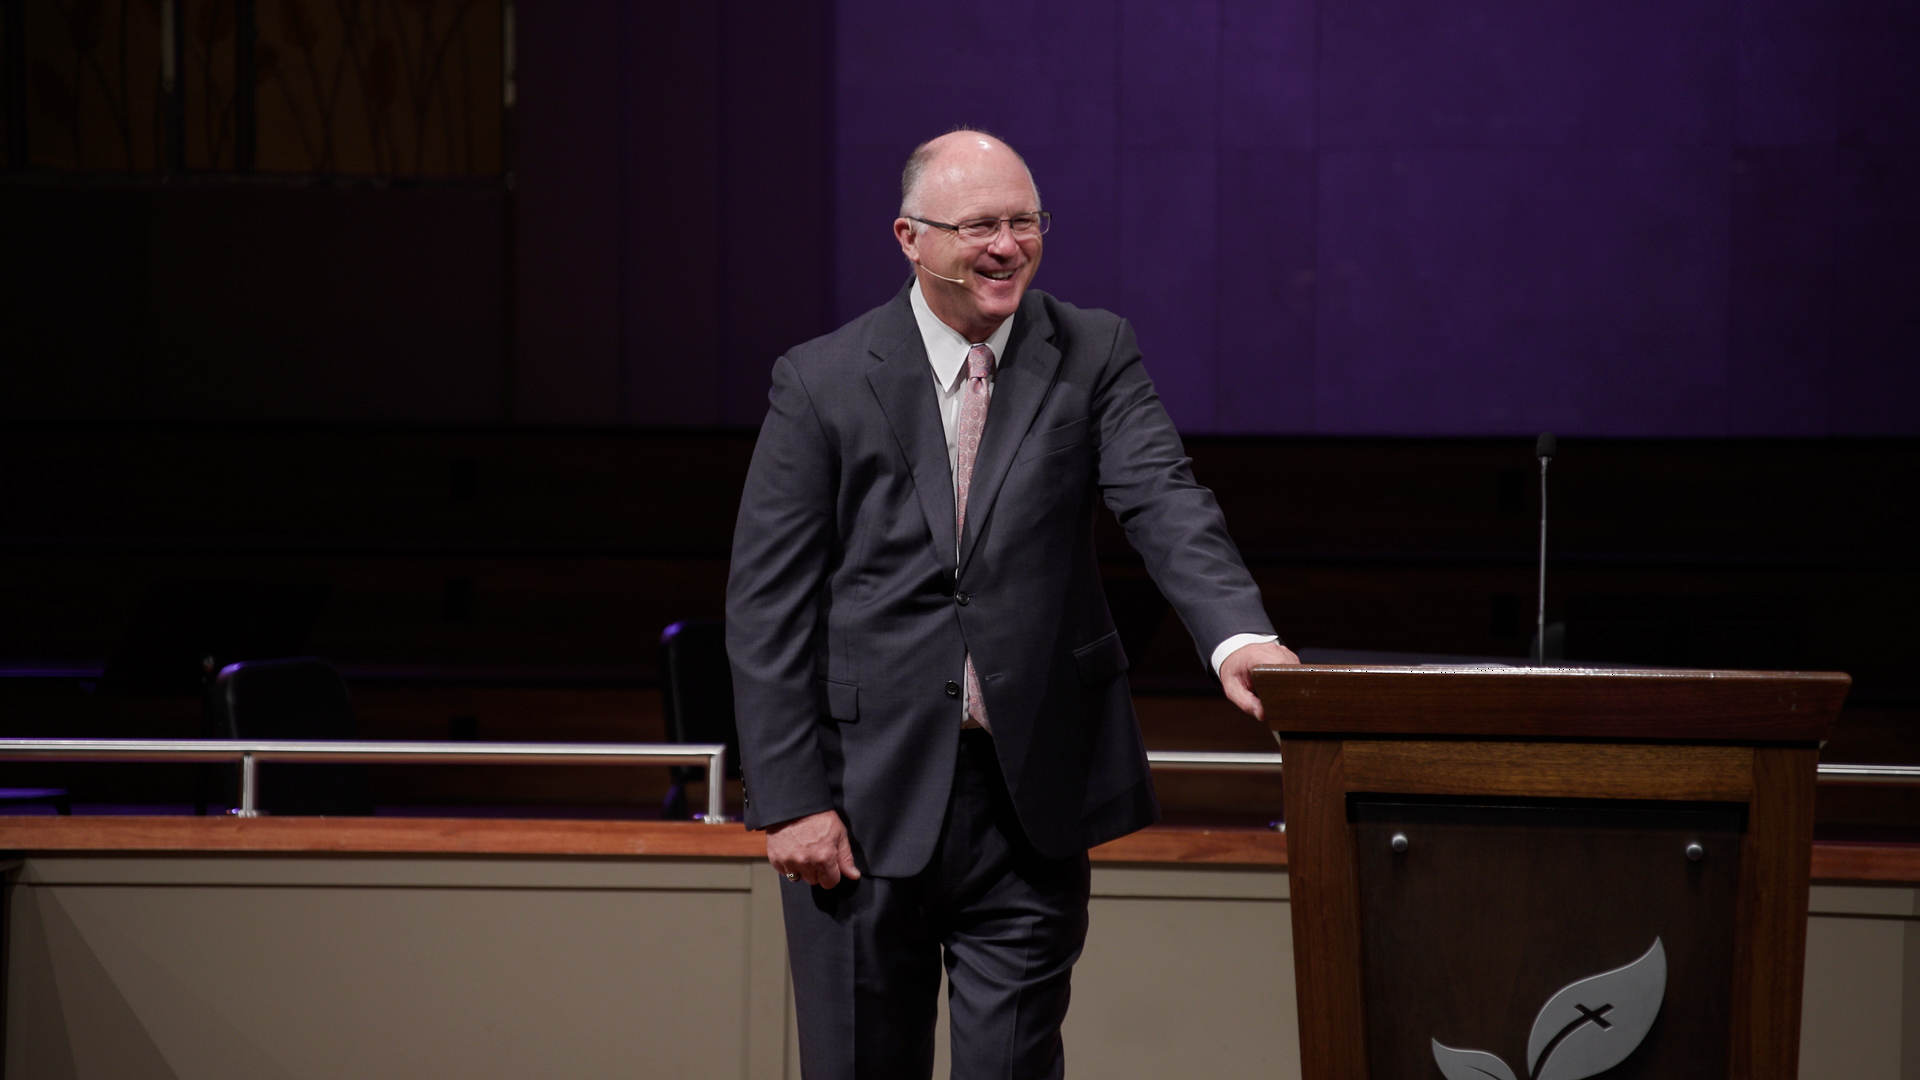 Pastor Paul Chappell: That Your Joy May Be Full